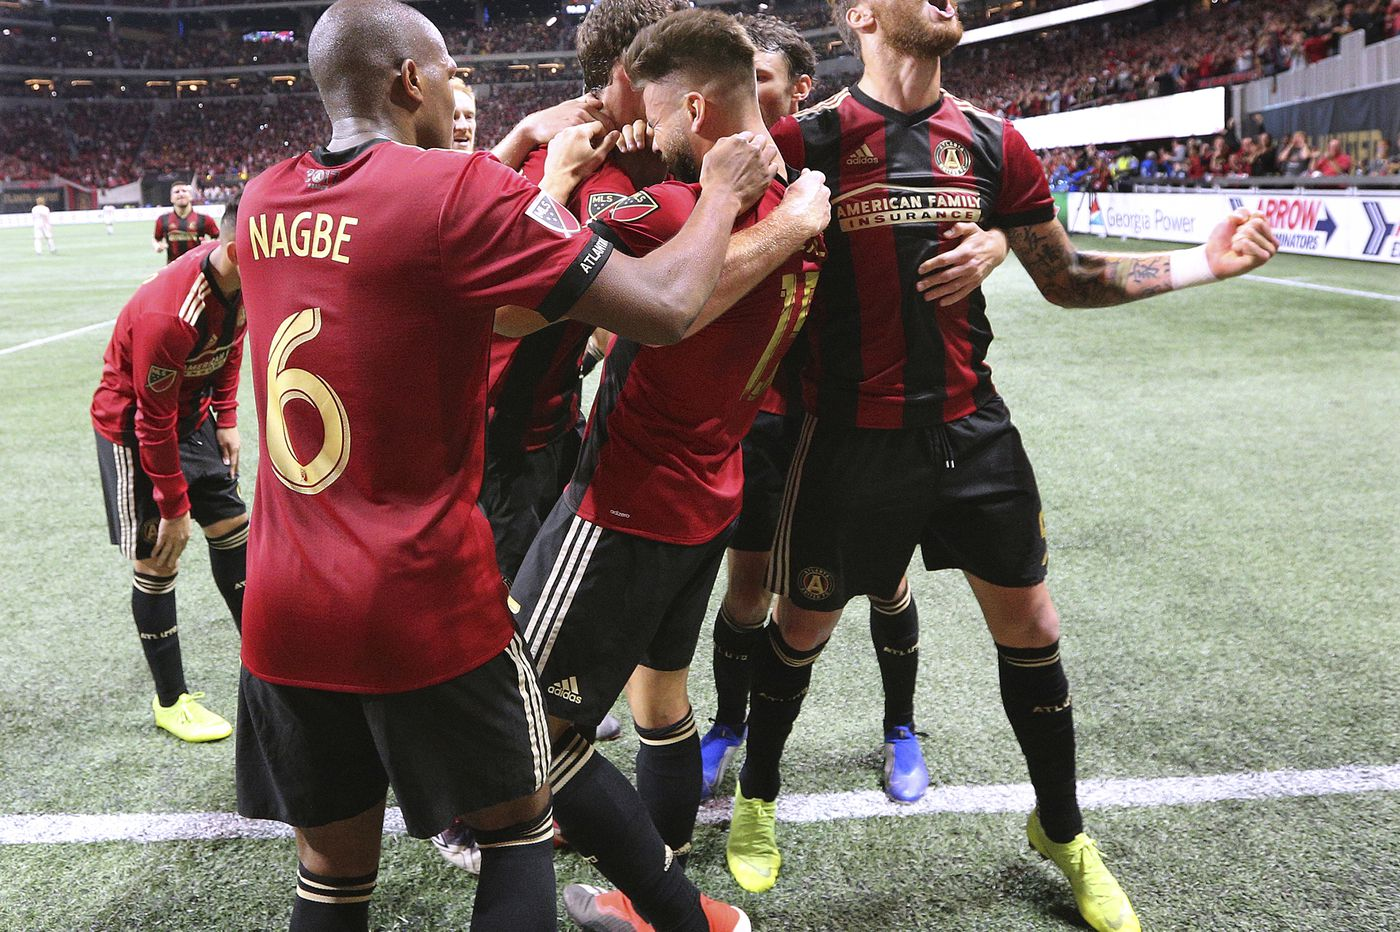 Atlanta United on course to host MLS Cup final after 3-0 rout of New York Red Bulls